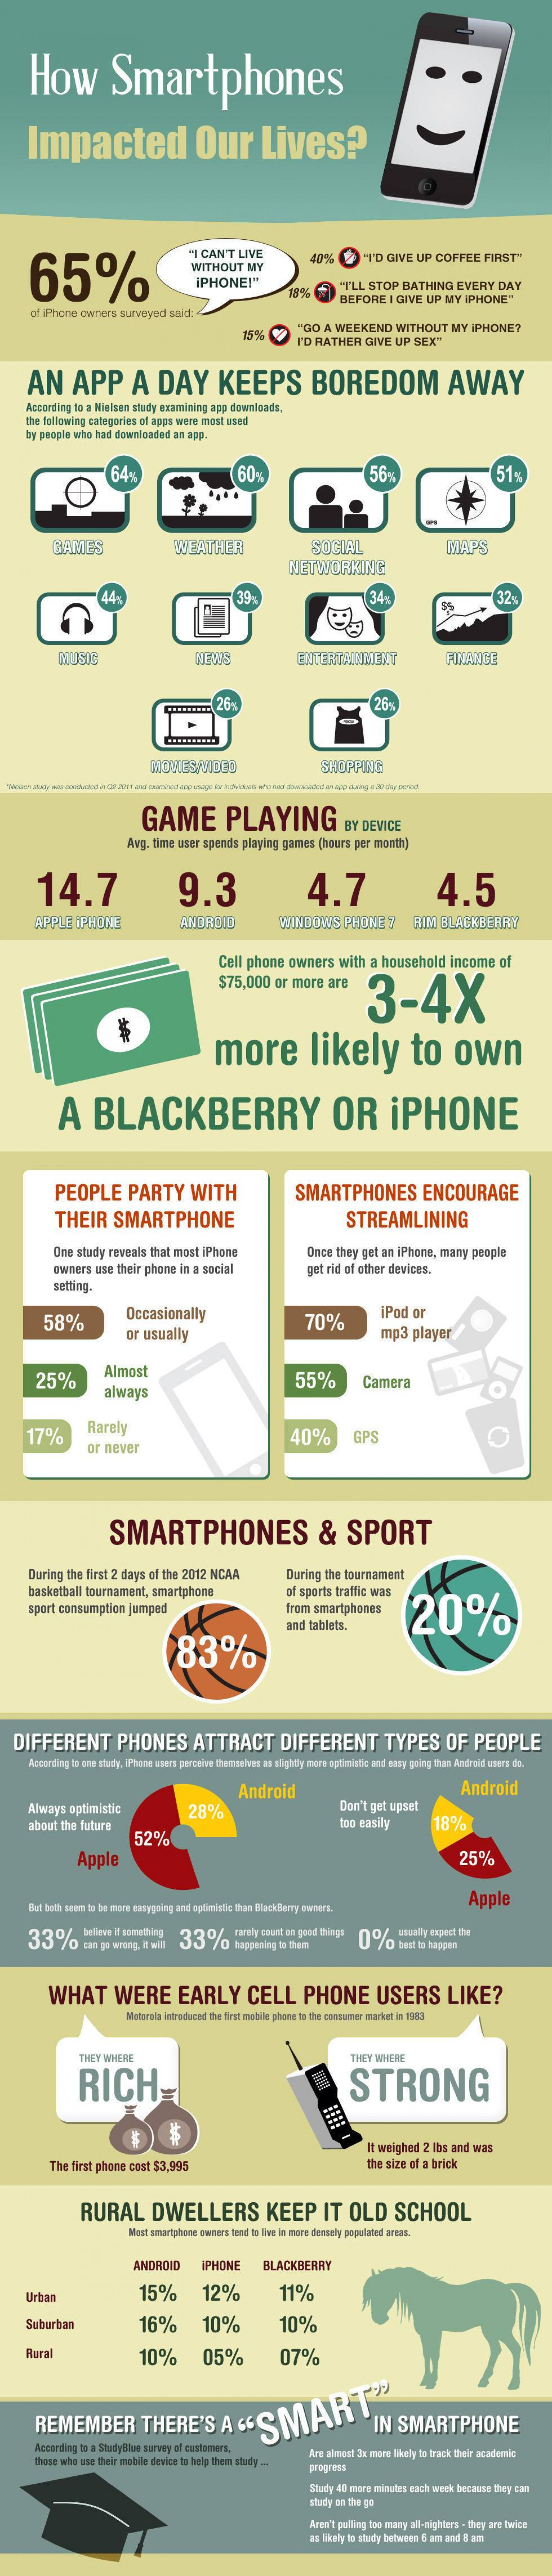 How Smartphones Impact Our Lives Infographic